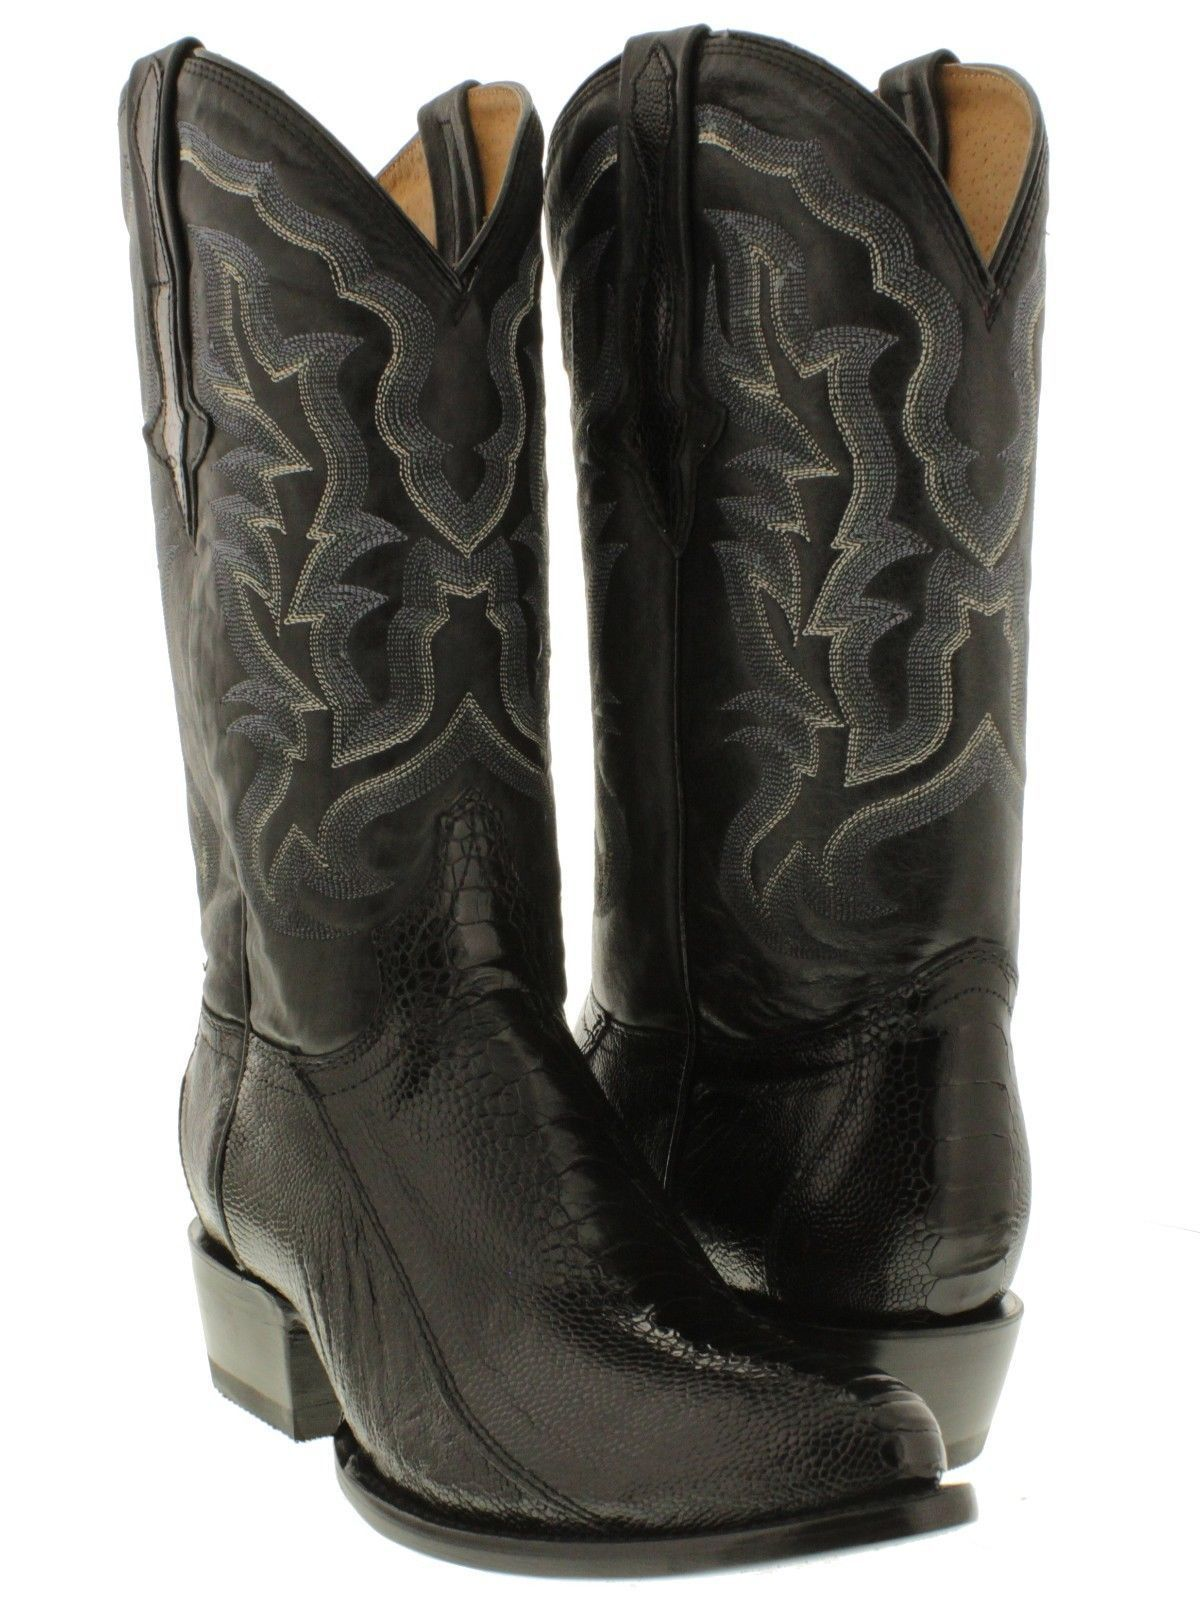 bcc8ecdbe1b Details about Mens Black Smooth Genuine Ostrich Skin Leather Cowboy Boots  Western Round Toe